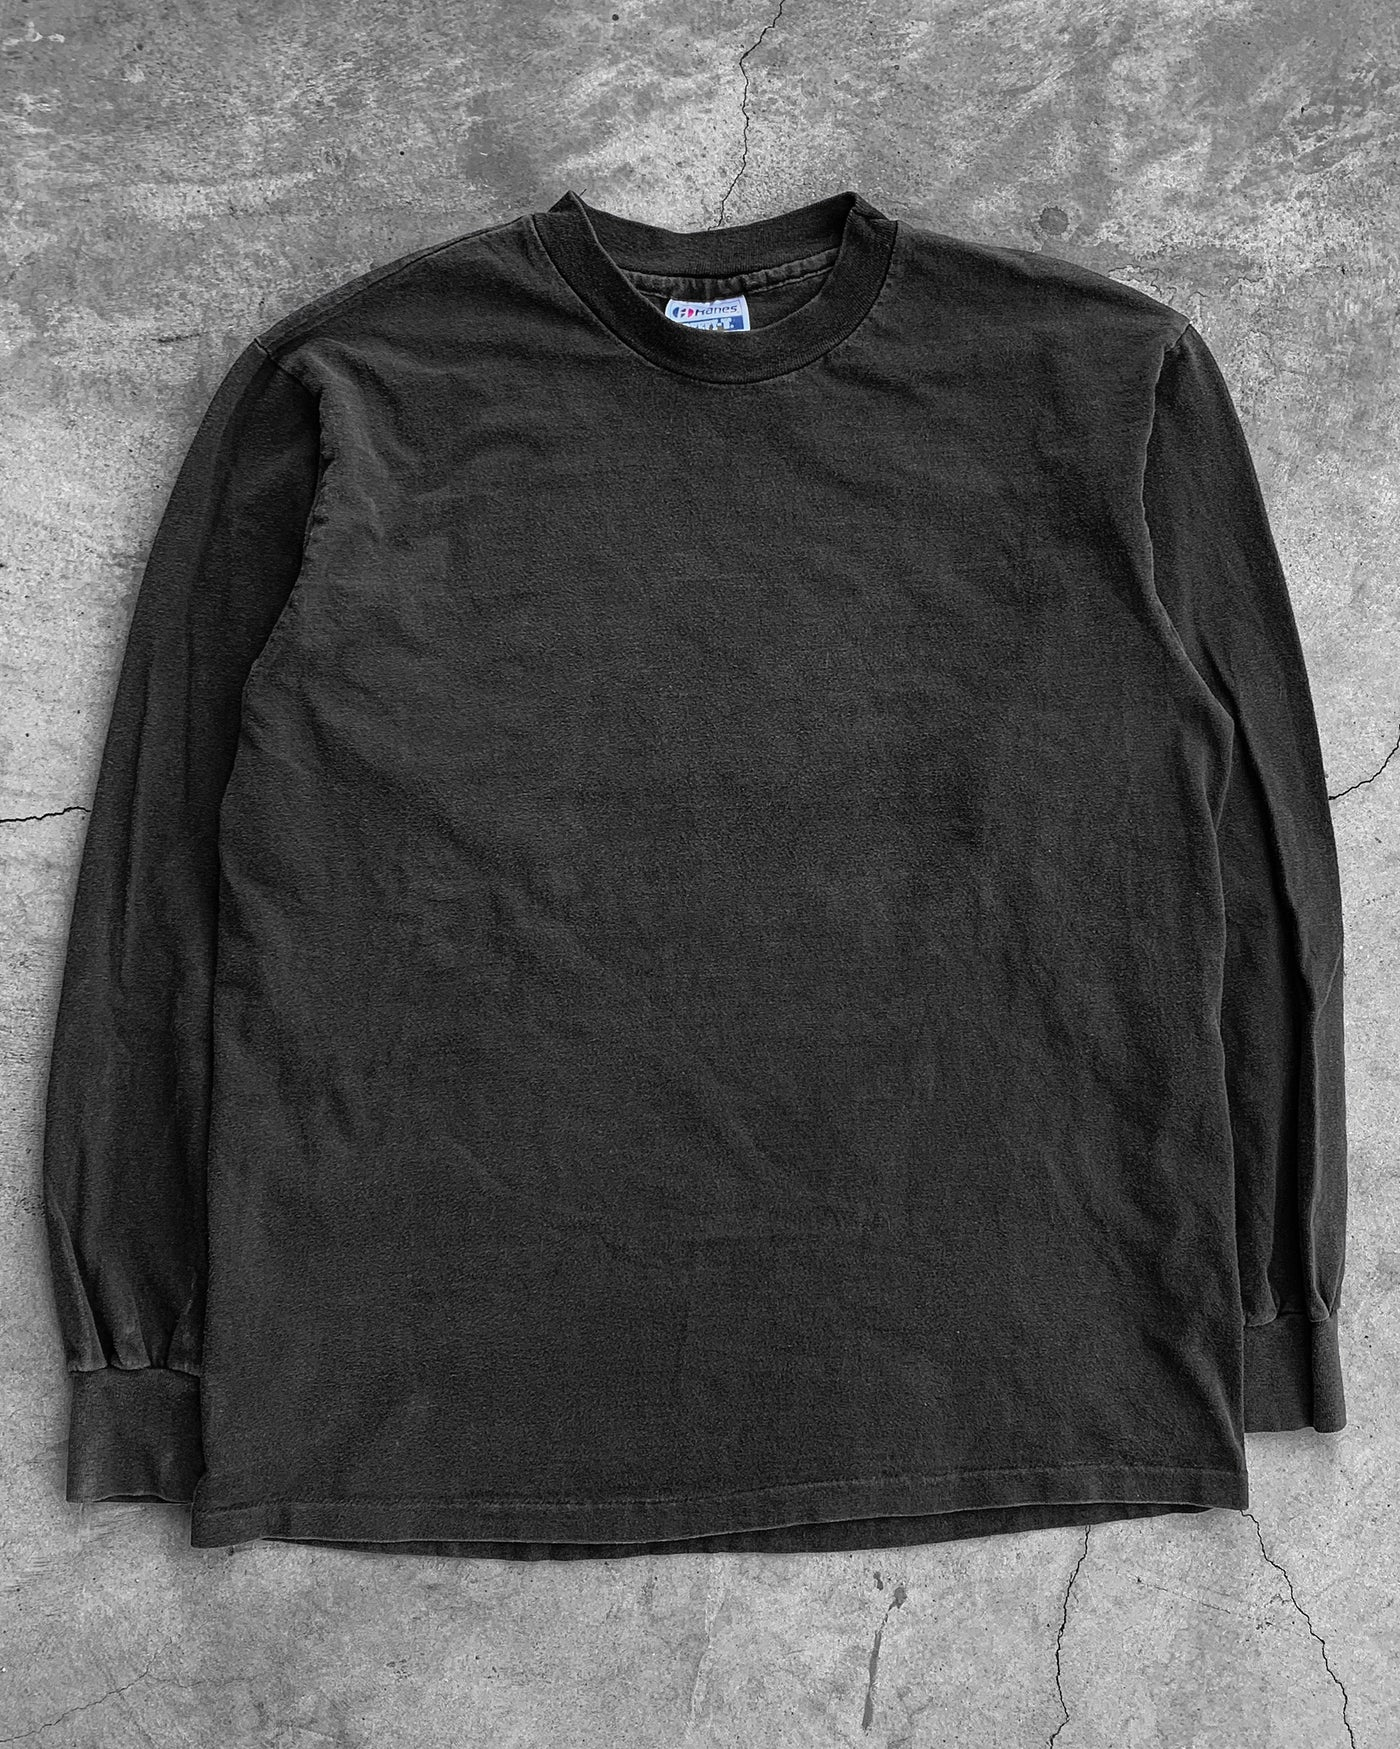 Single Stitched Black Hanes Beefy Long-Sleeve Tee  - 1990s